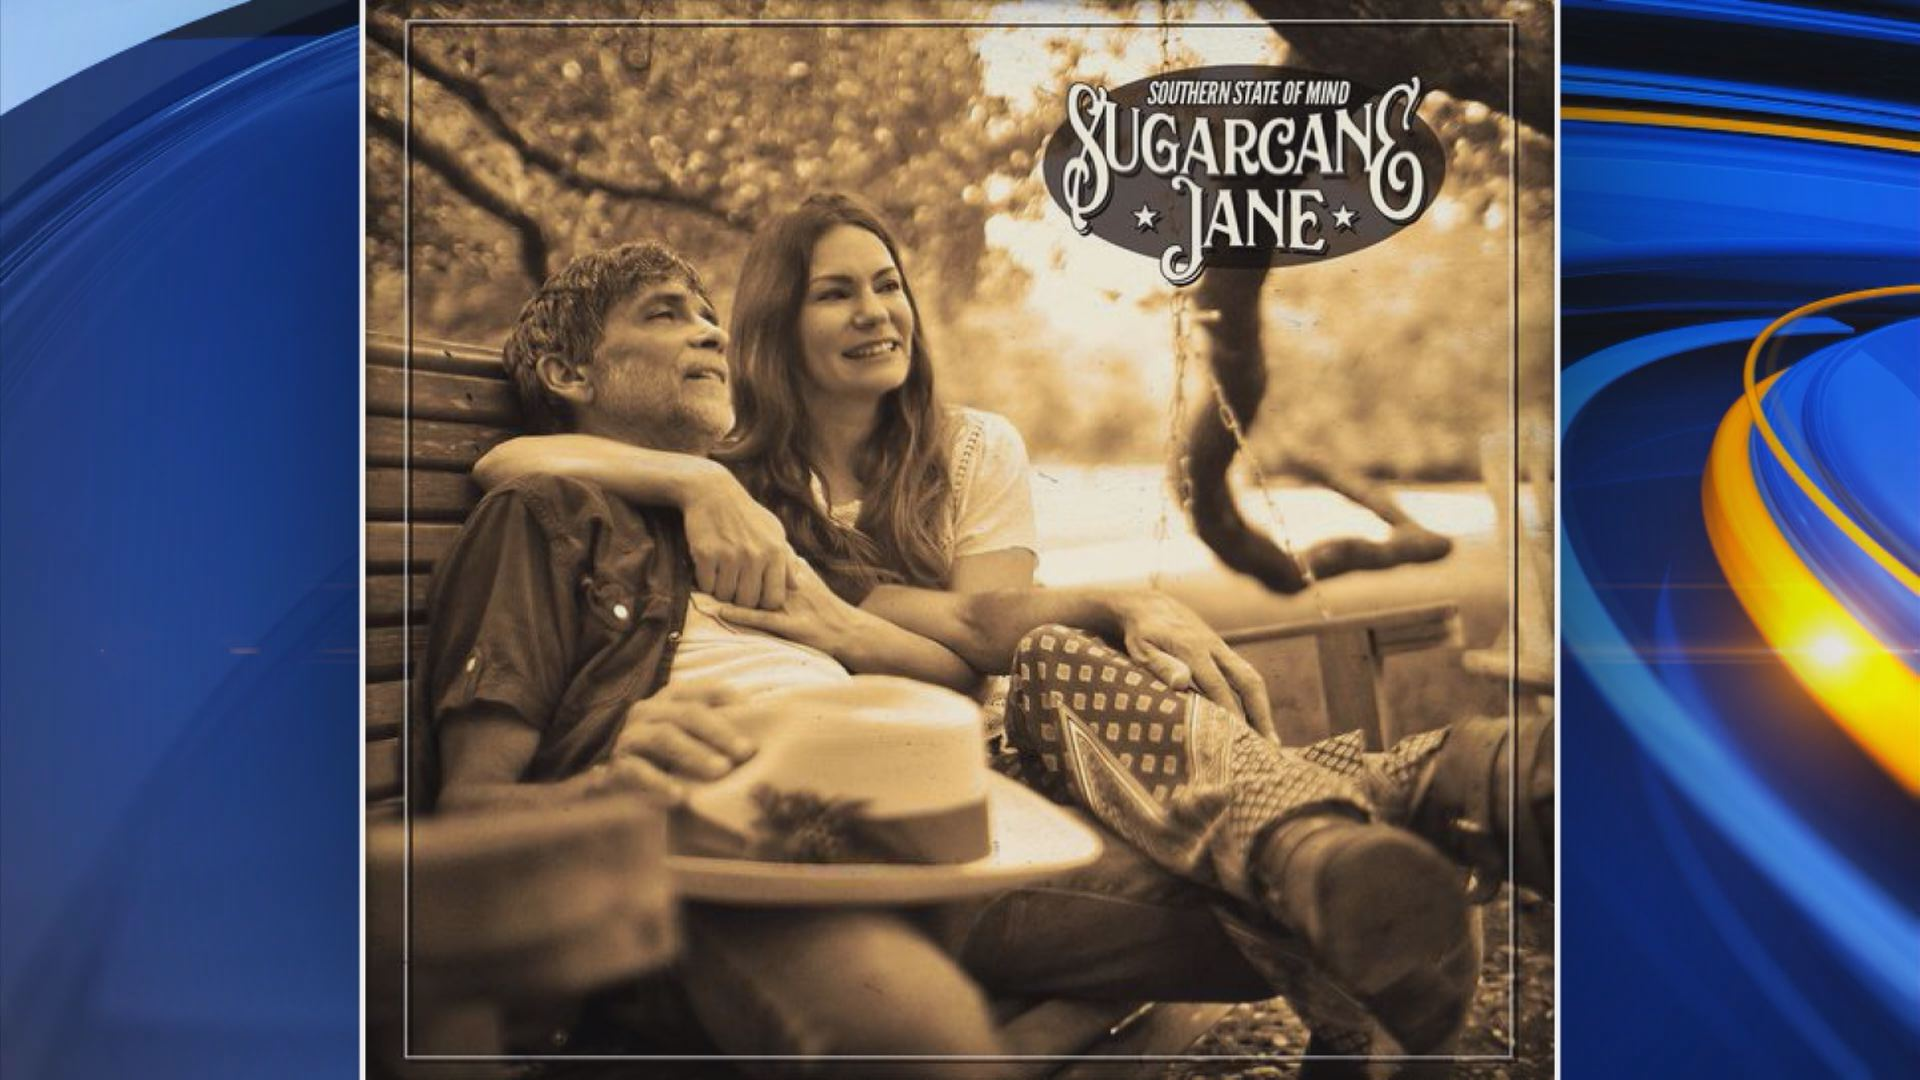 NEXSTAR-sugarcane-jane-southern-state-of-mind-cover-cd_1539973322679.jpeg